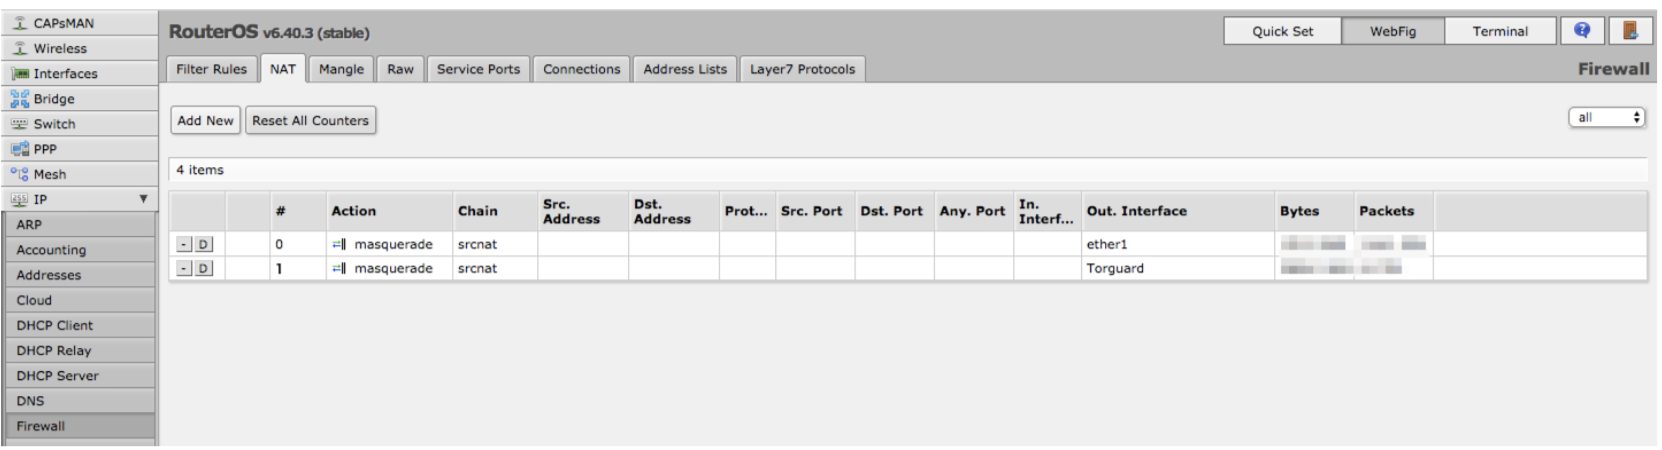 How-To Setup PPTP on a Mikrotik Router - Knowledgebase